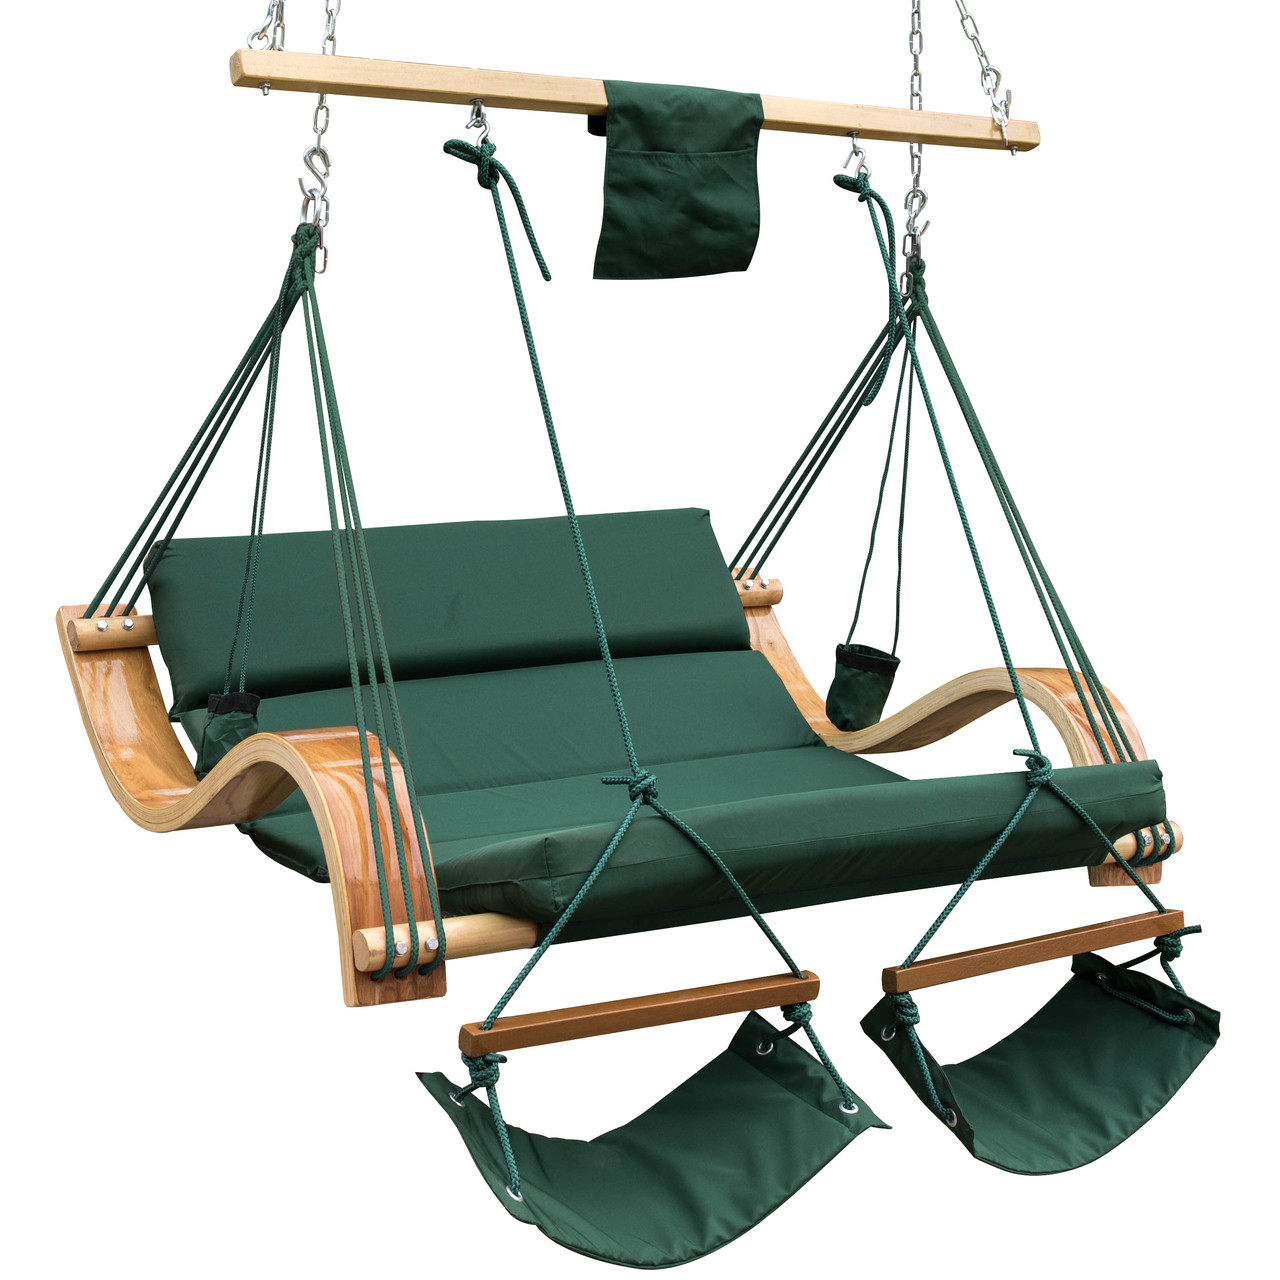 hanging chair double composite adirondack rocking chairs deluxe oversized rope cotton padded